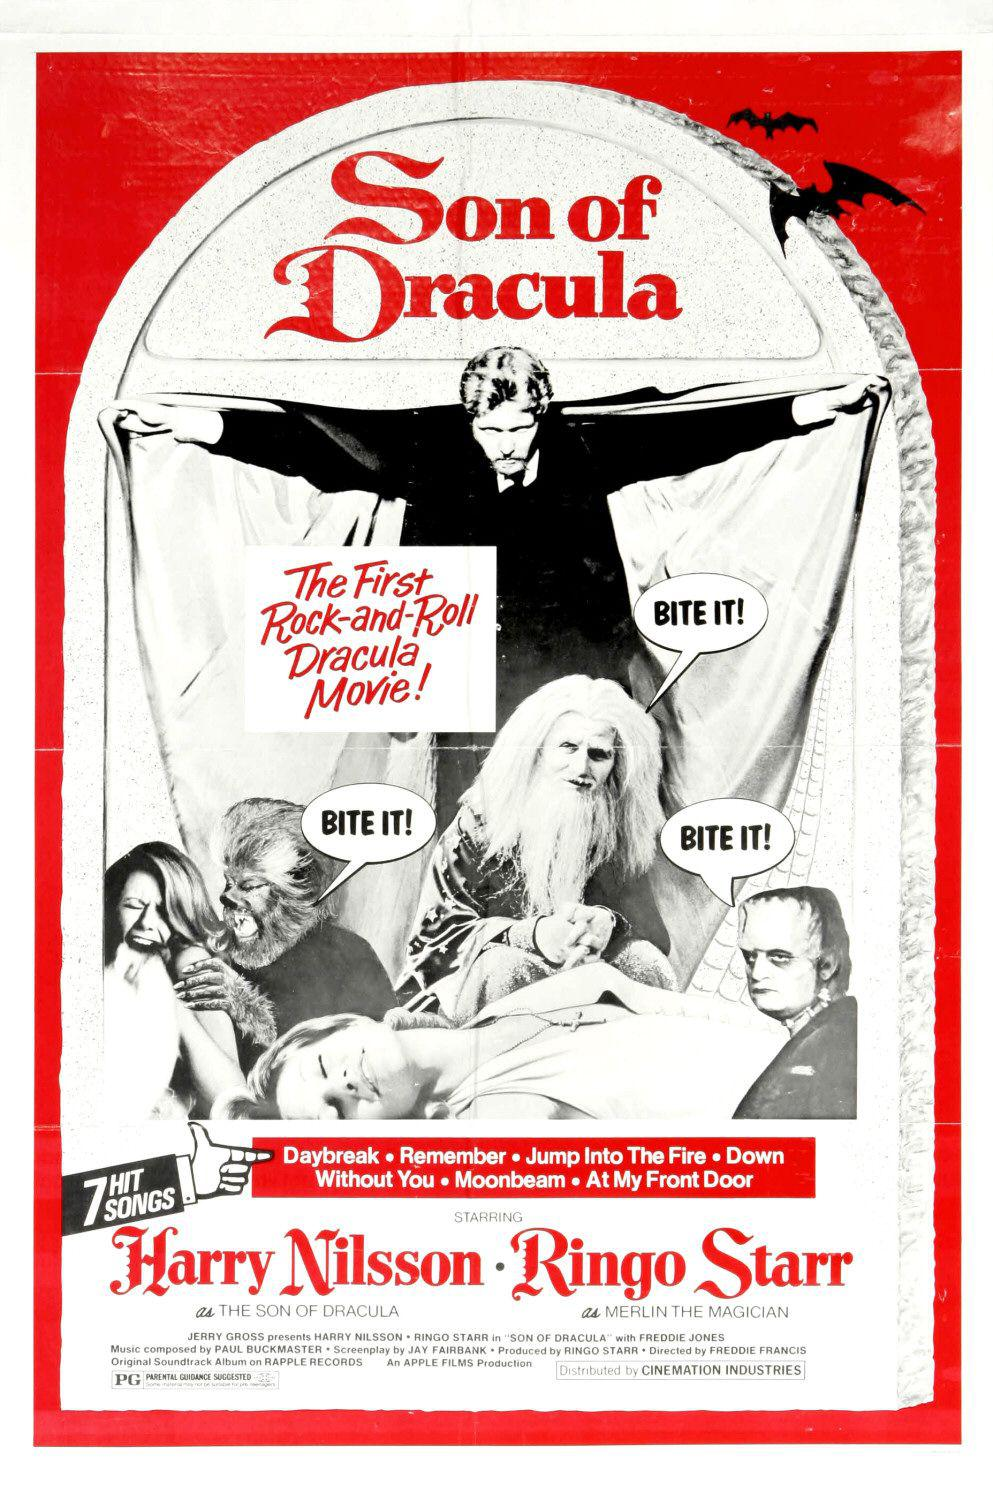 Son of Dracula ... the first Rock-and-Roll Drakula movie - Daybreak - Remember - Jump into the Fire - Down - Without You - Moonbeam - at my front Door - starring Harry Nilsson - Ringo Star - Freddia Jones - old cult musical film poster